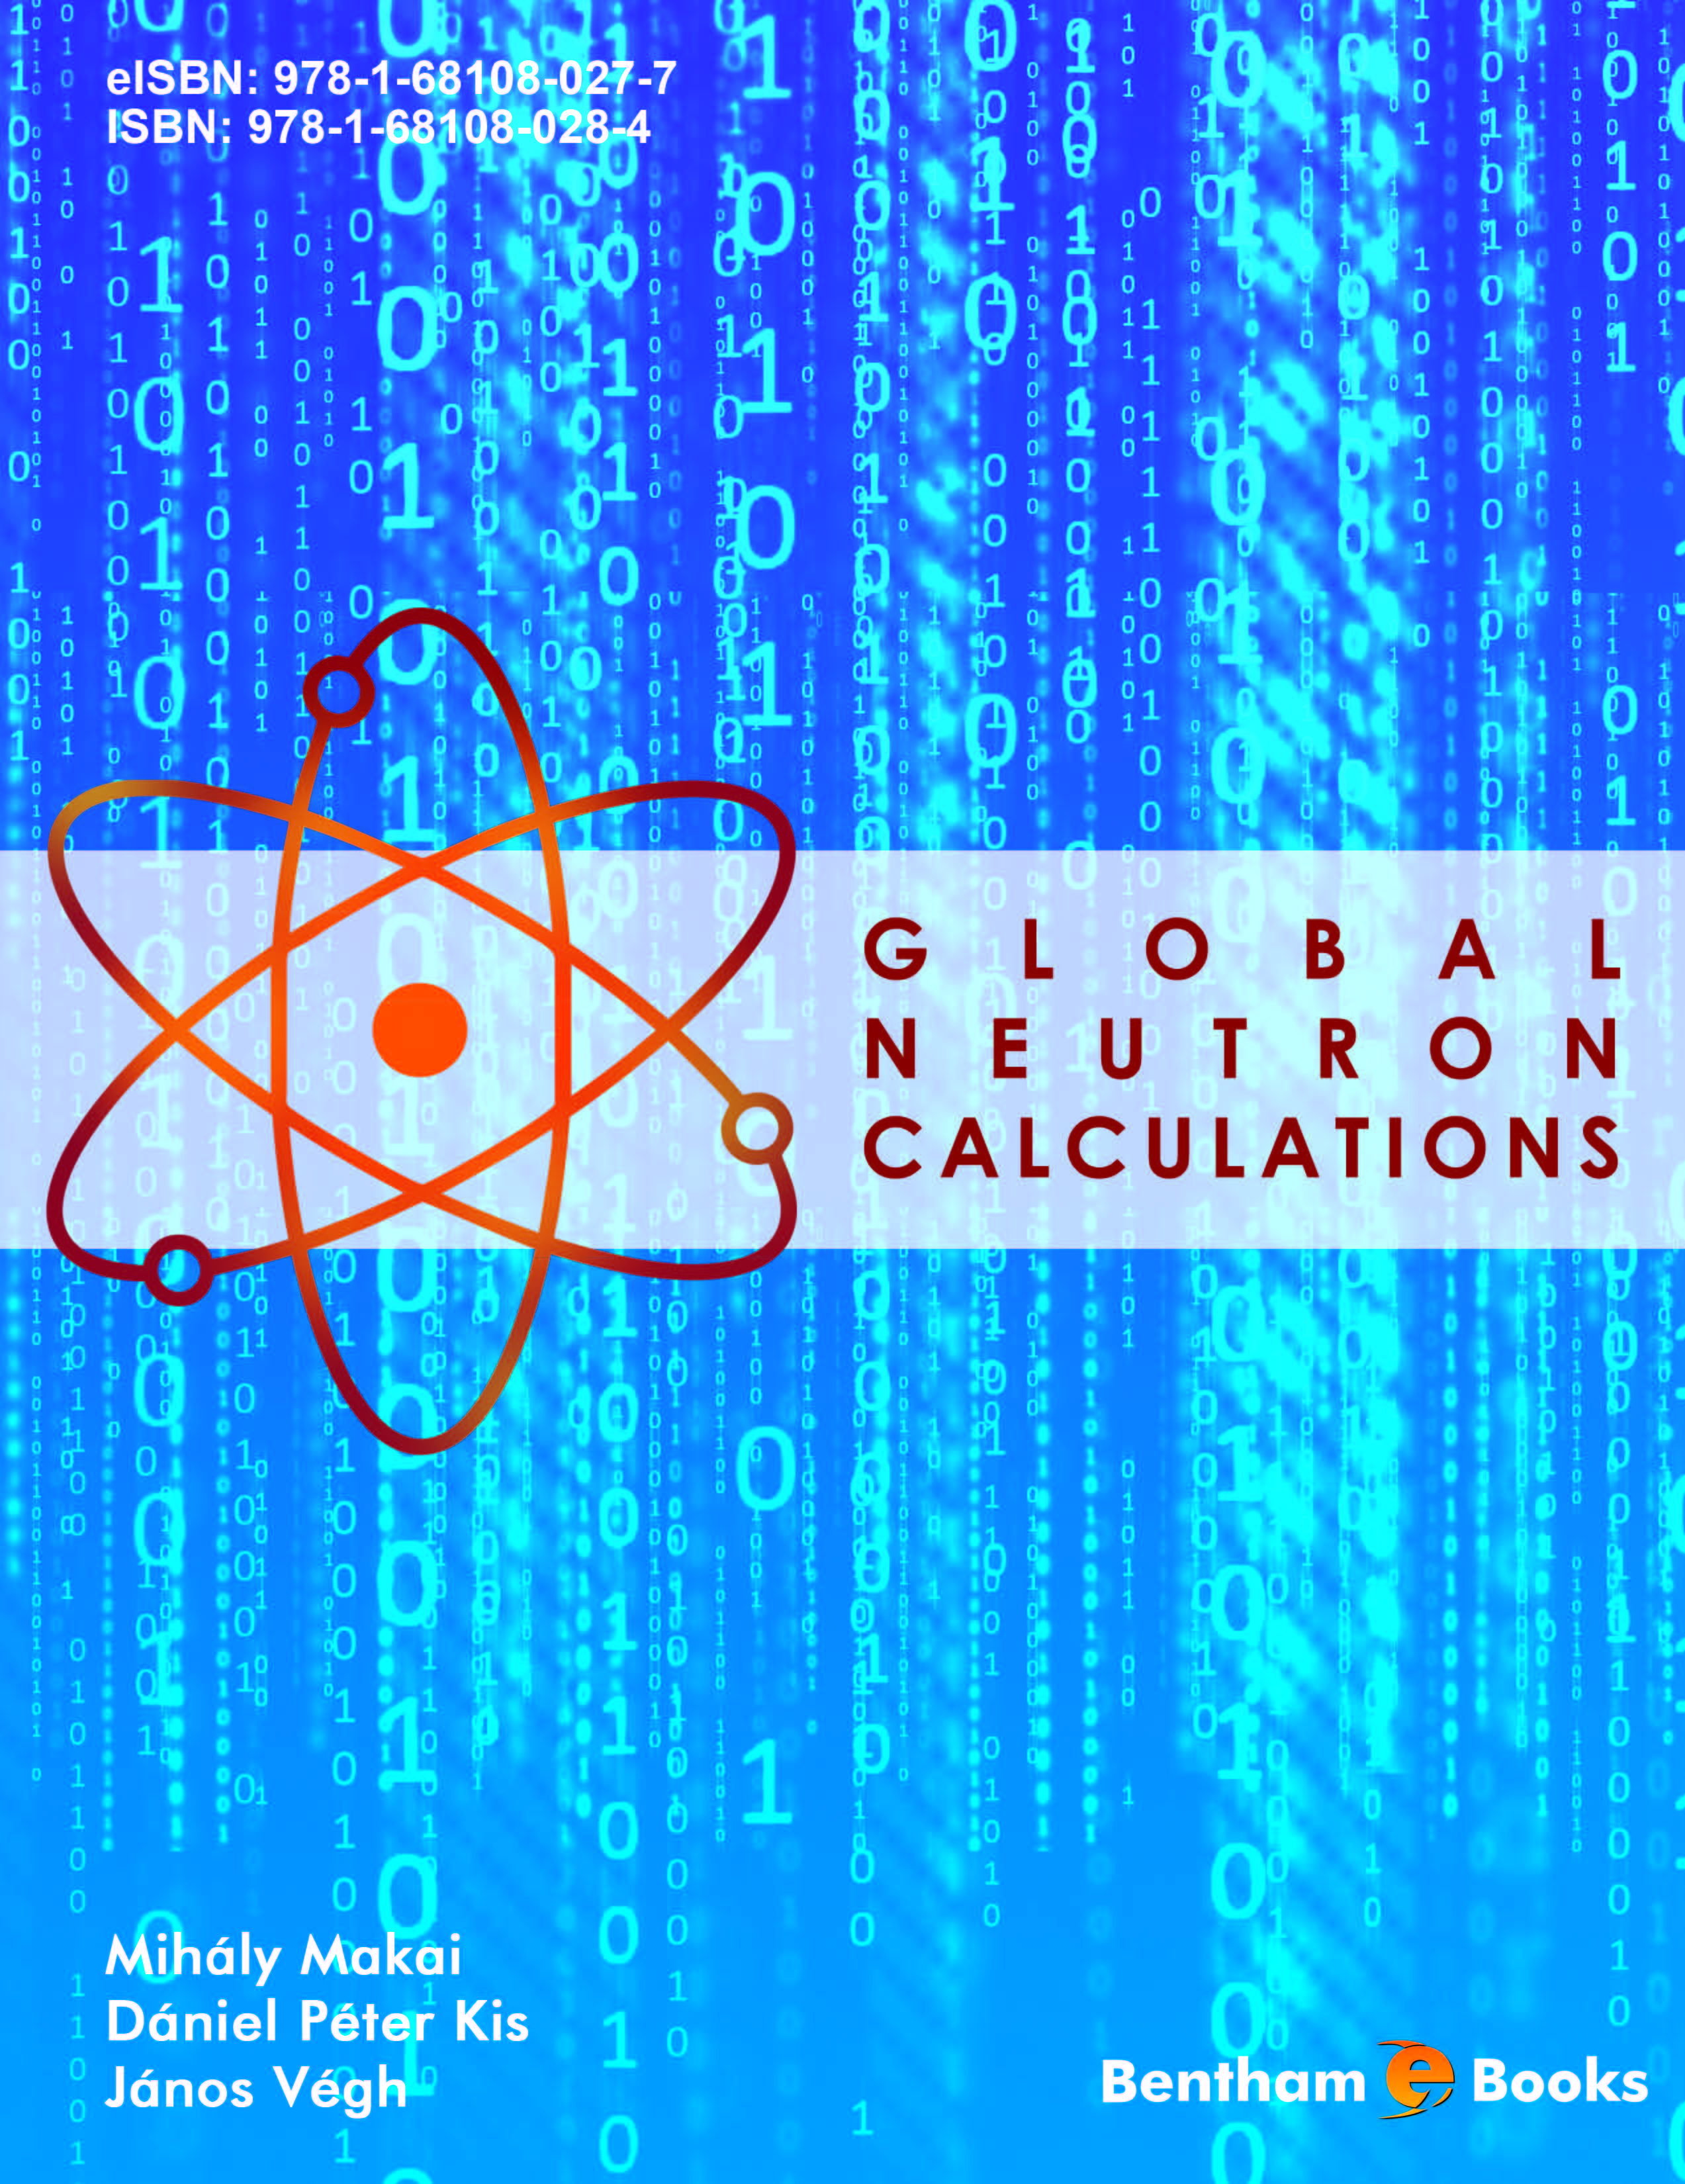 Global Neutron Calculations